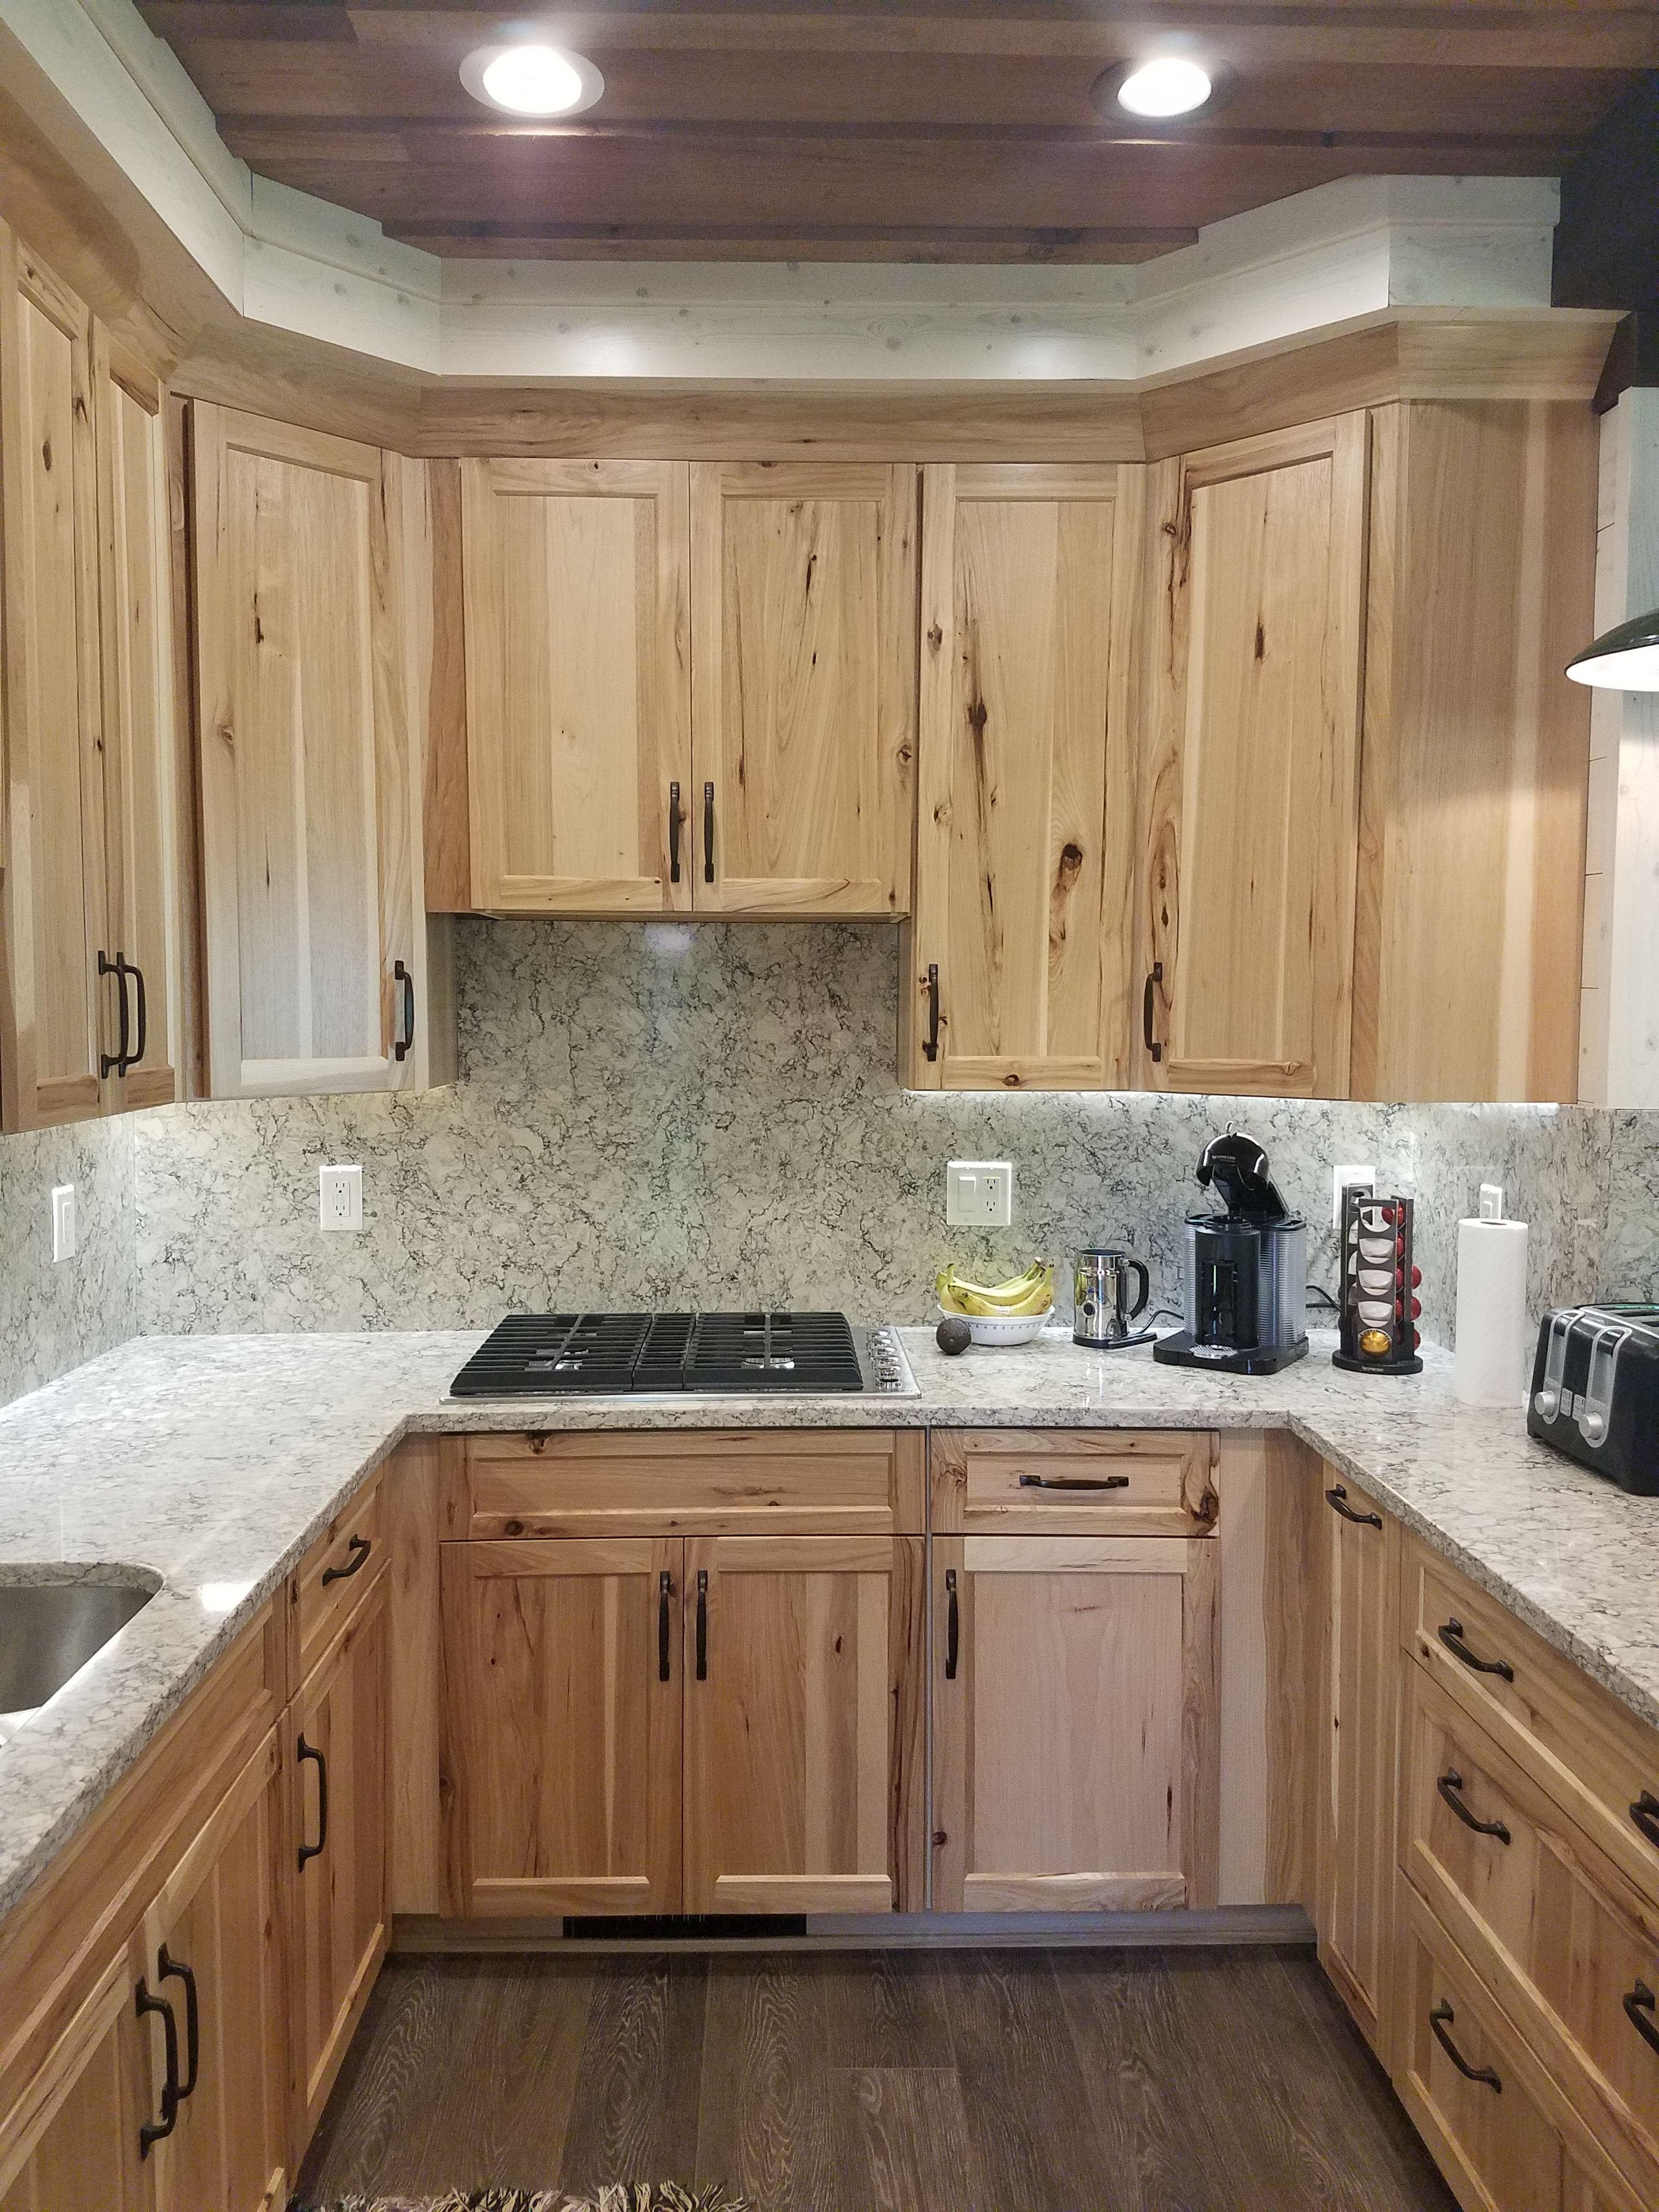 How To Clean Quartz Countertops Stains Natural Rustic Hickory Cabinets With Quotintermezzo Quot Quartz